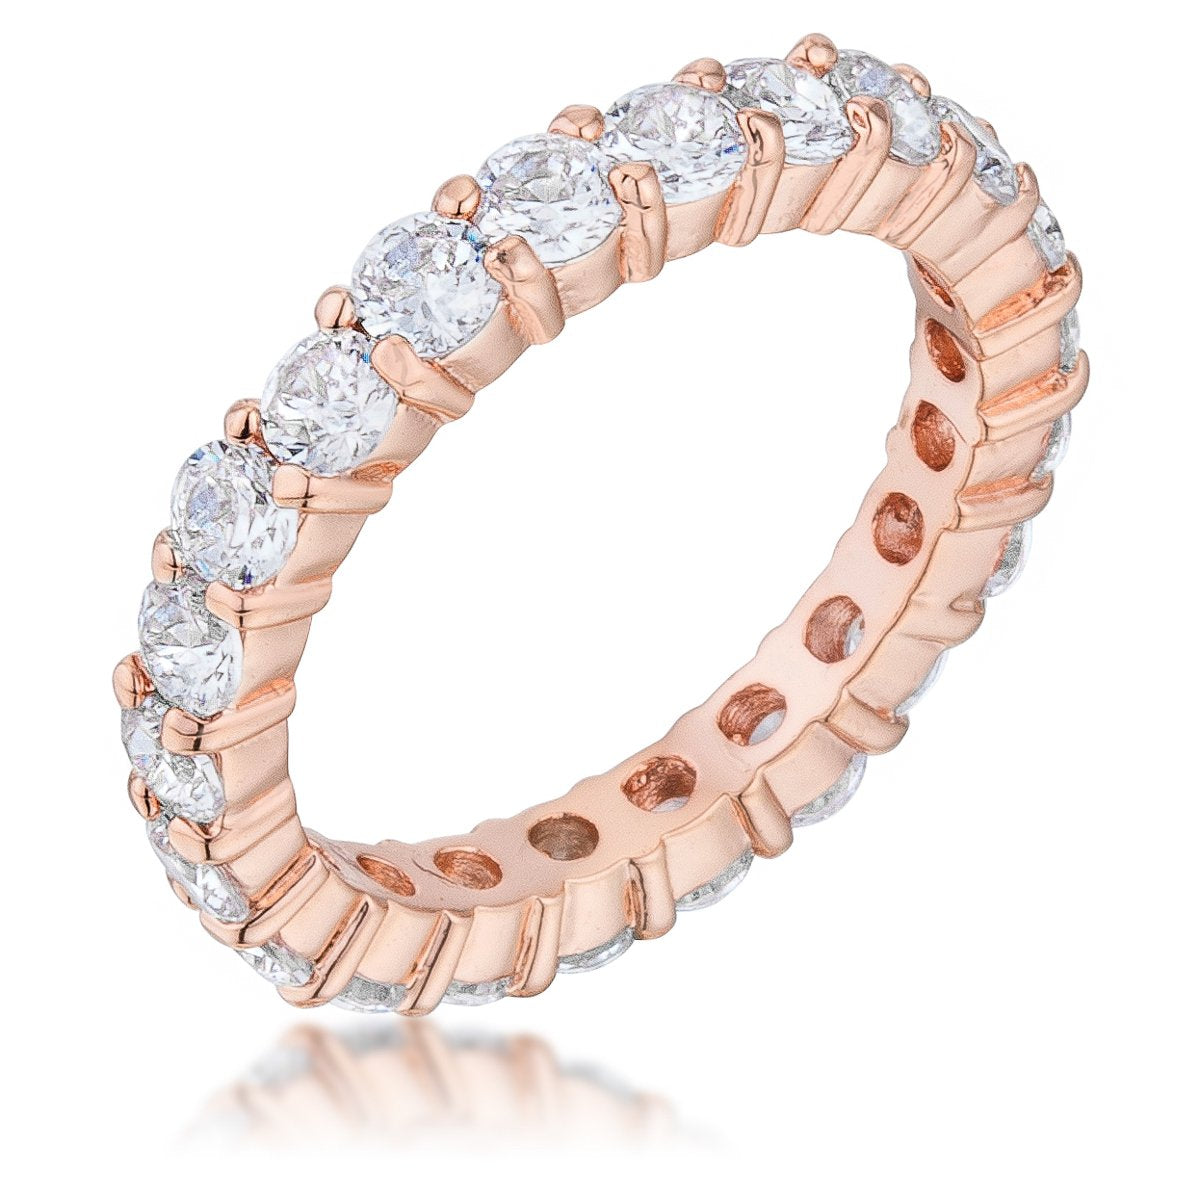 Jessica Band in Rose Goldtone Finish - R07349A-C01